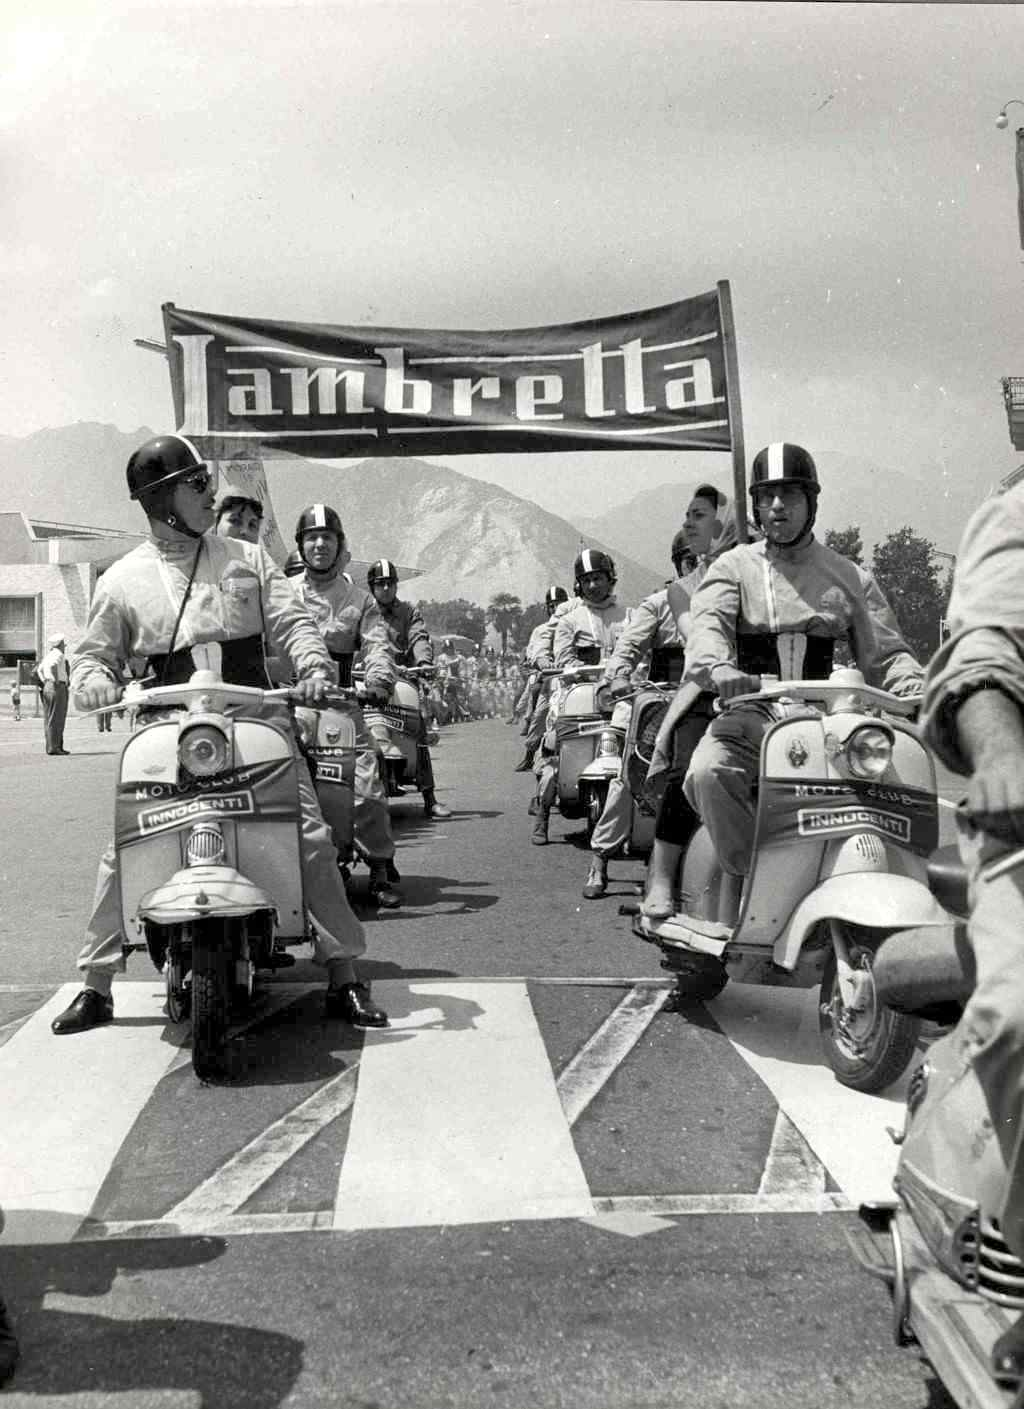 1960 National Narcissus Lambretta motoclub meeting in Lombardy3